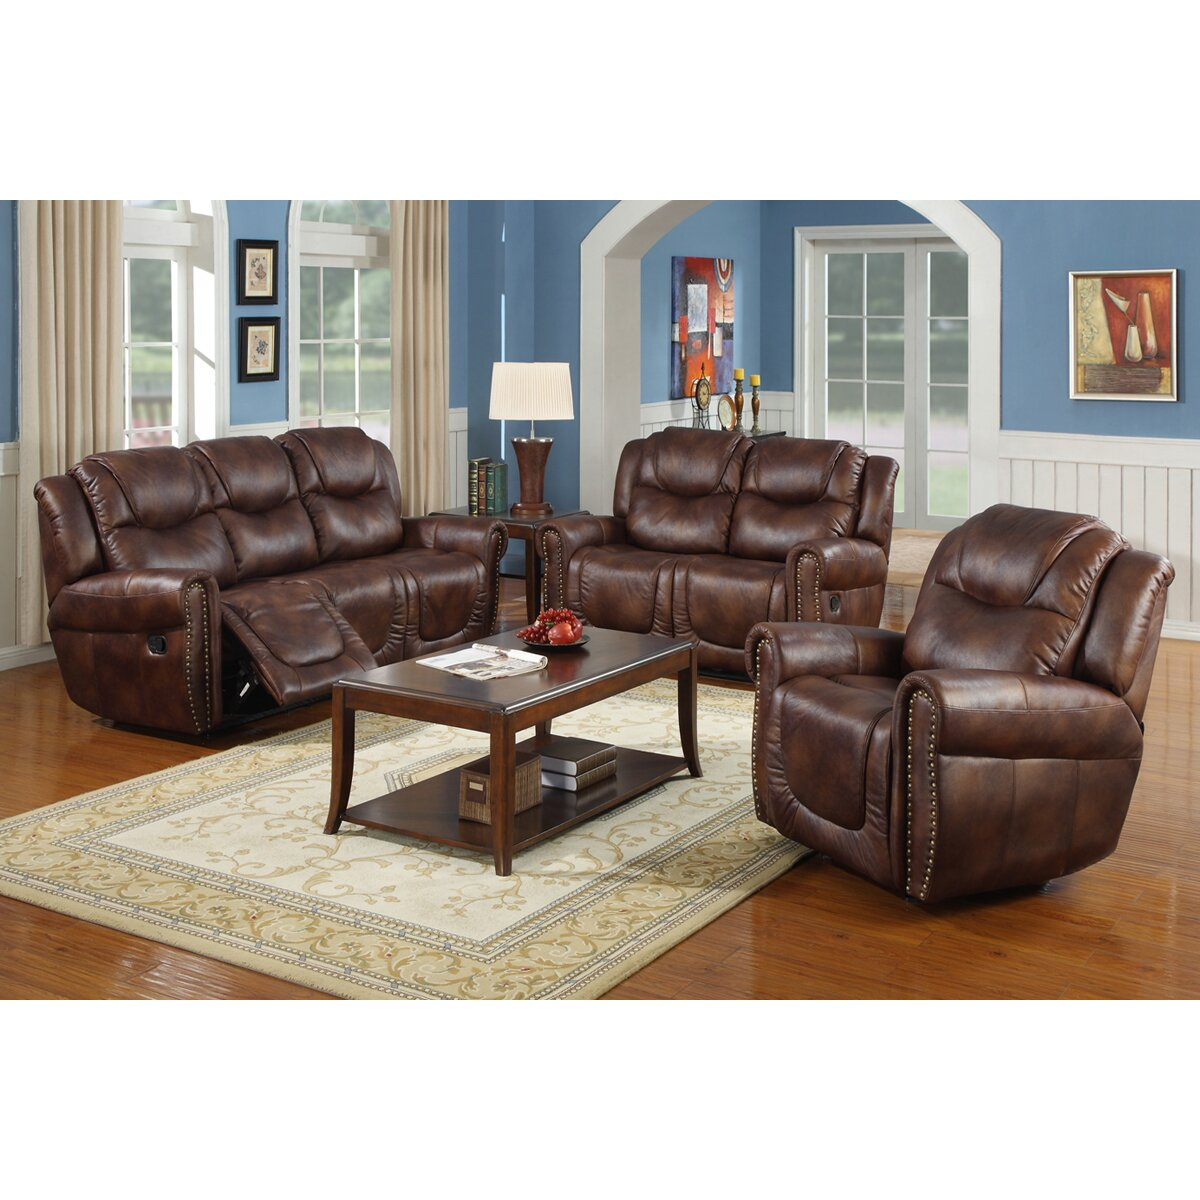 Toledo 3 piece bonded leather reclining living room sofa for 3 piece living room set